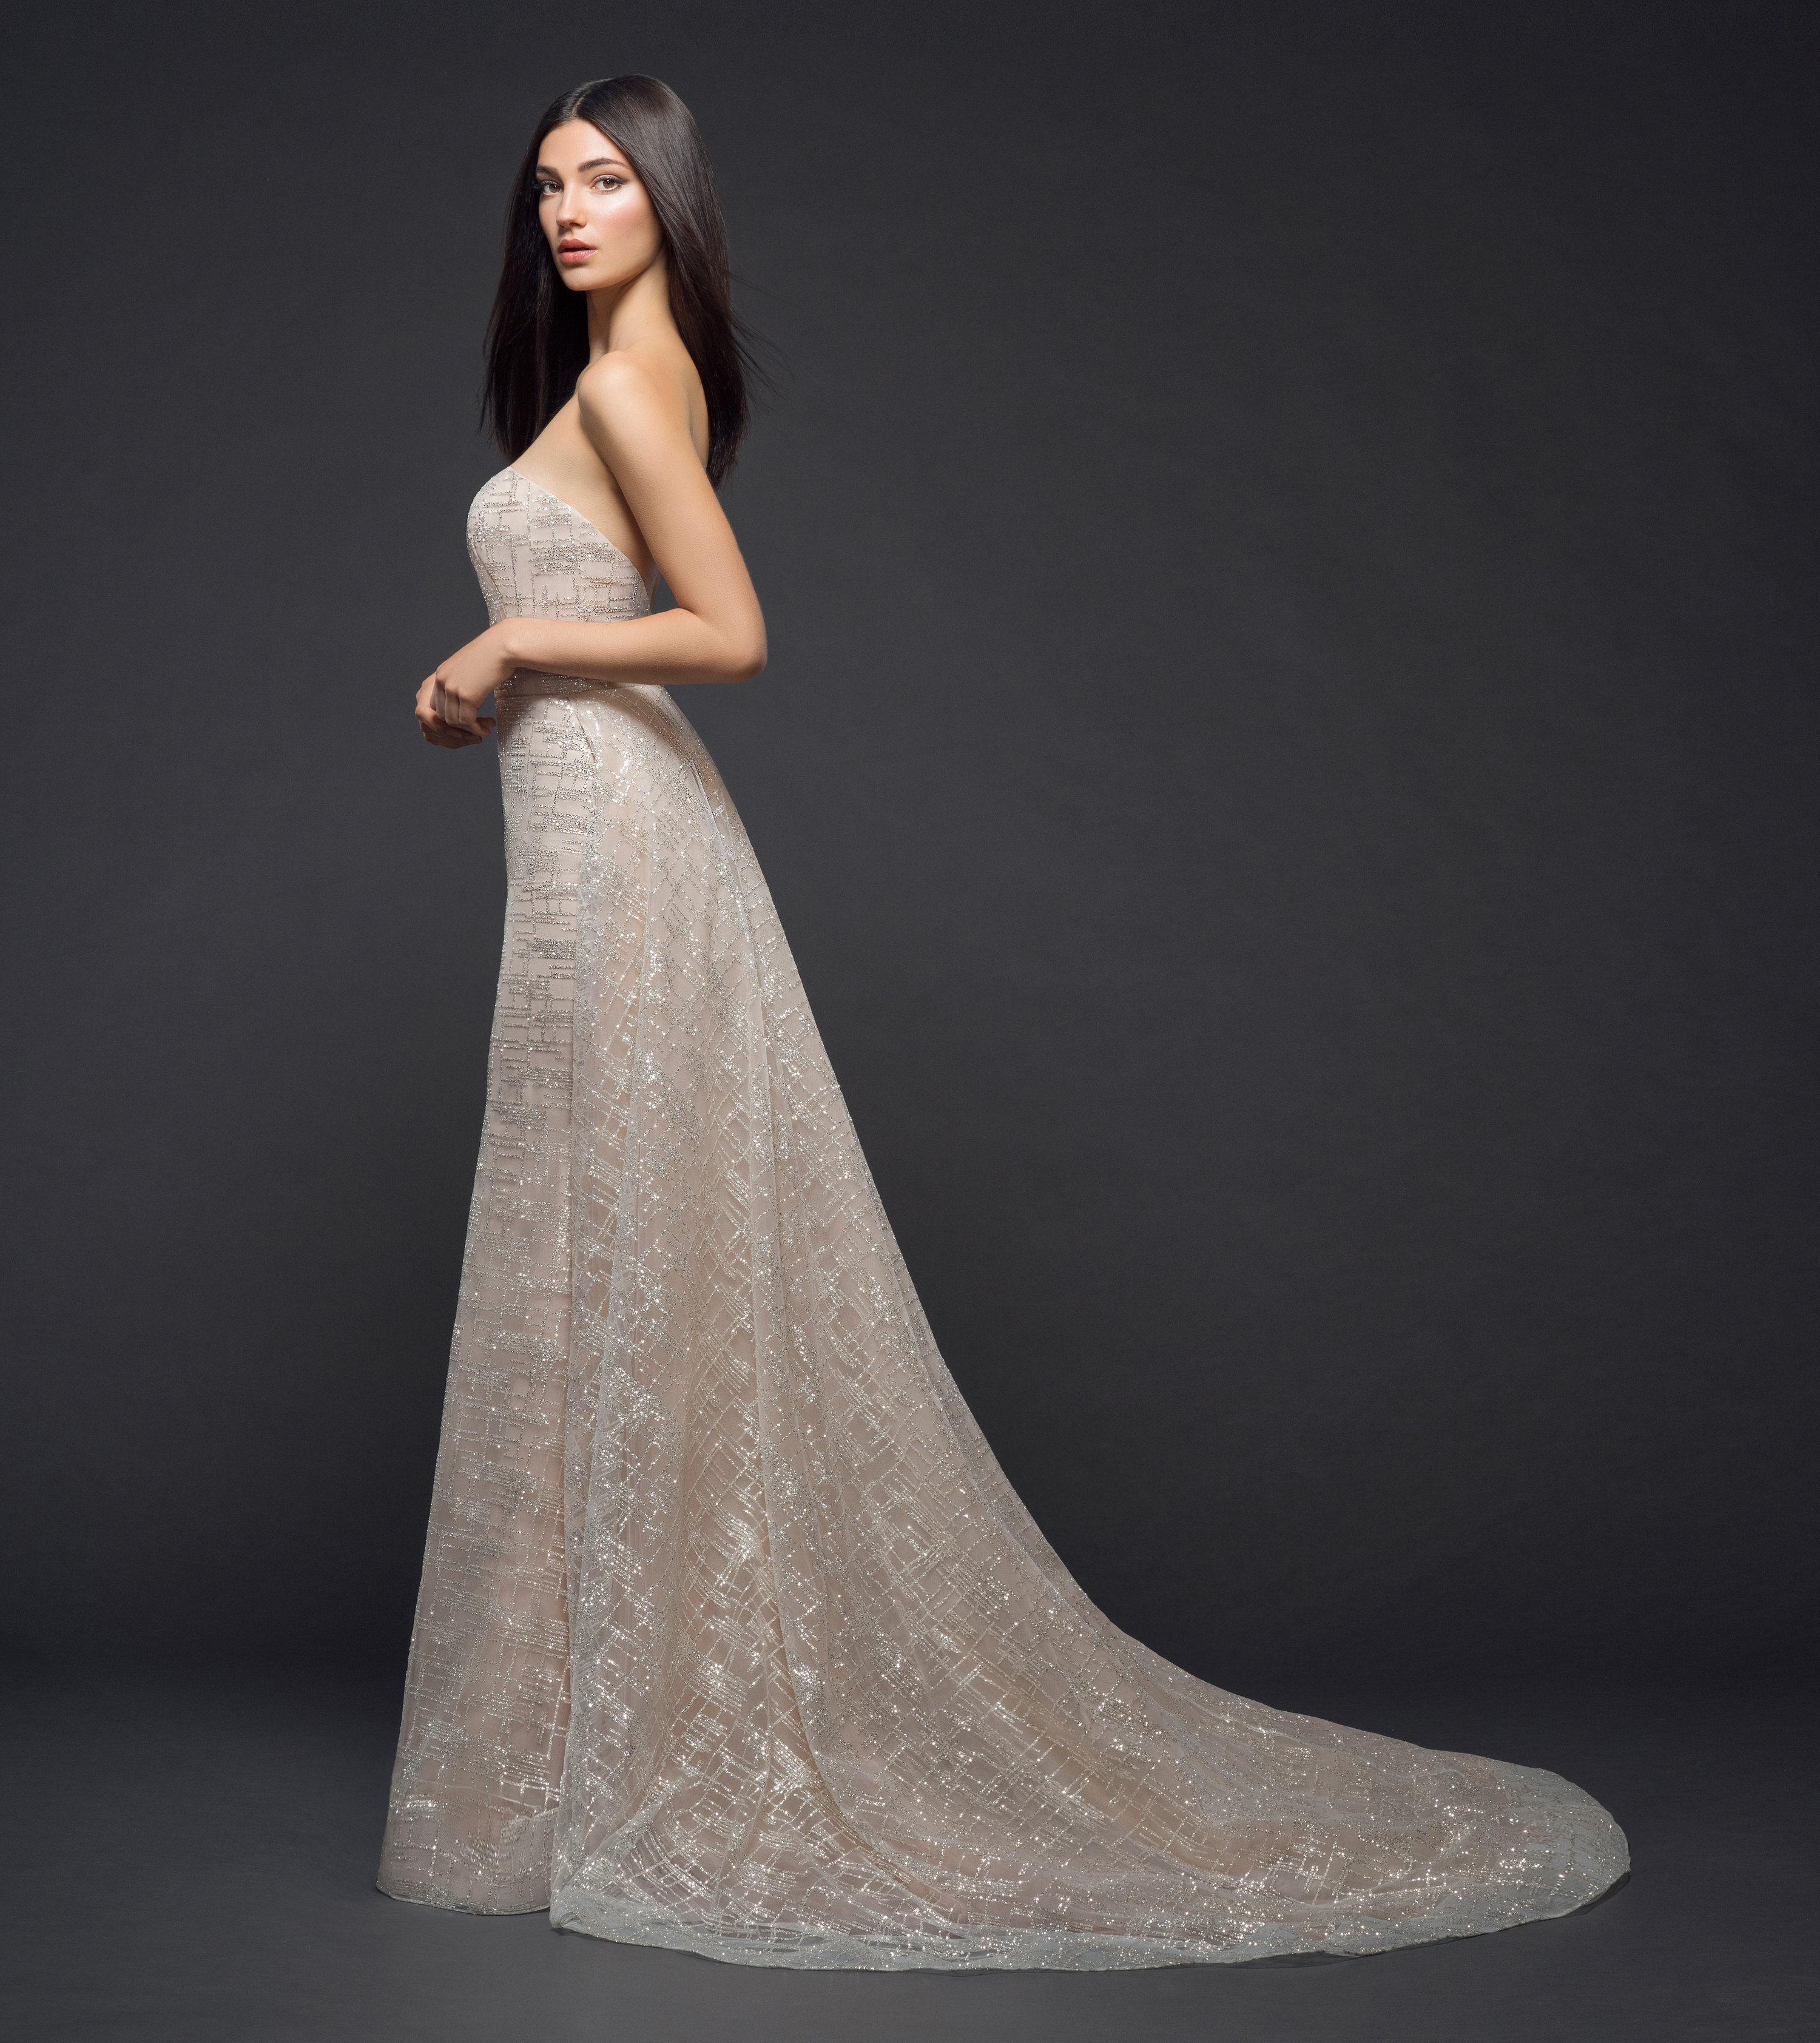 Bridal Gowns and Wedding Dresses by JLM Couture - Style 3800